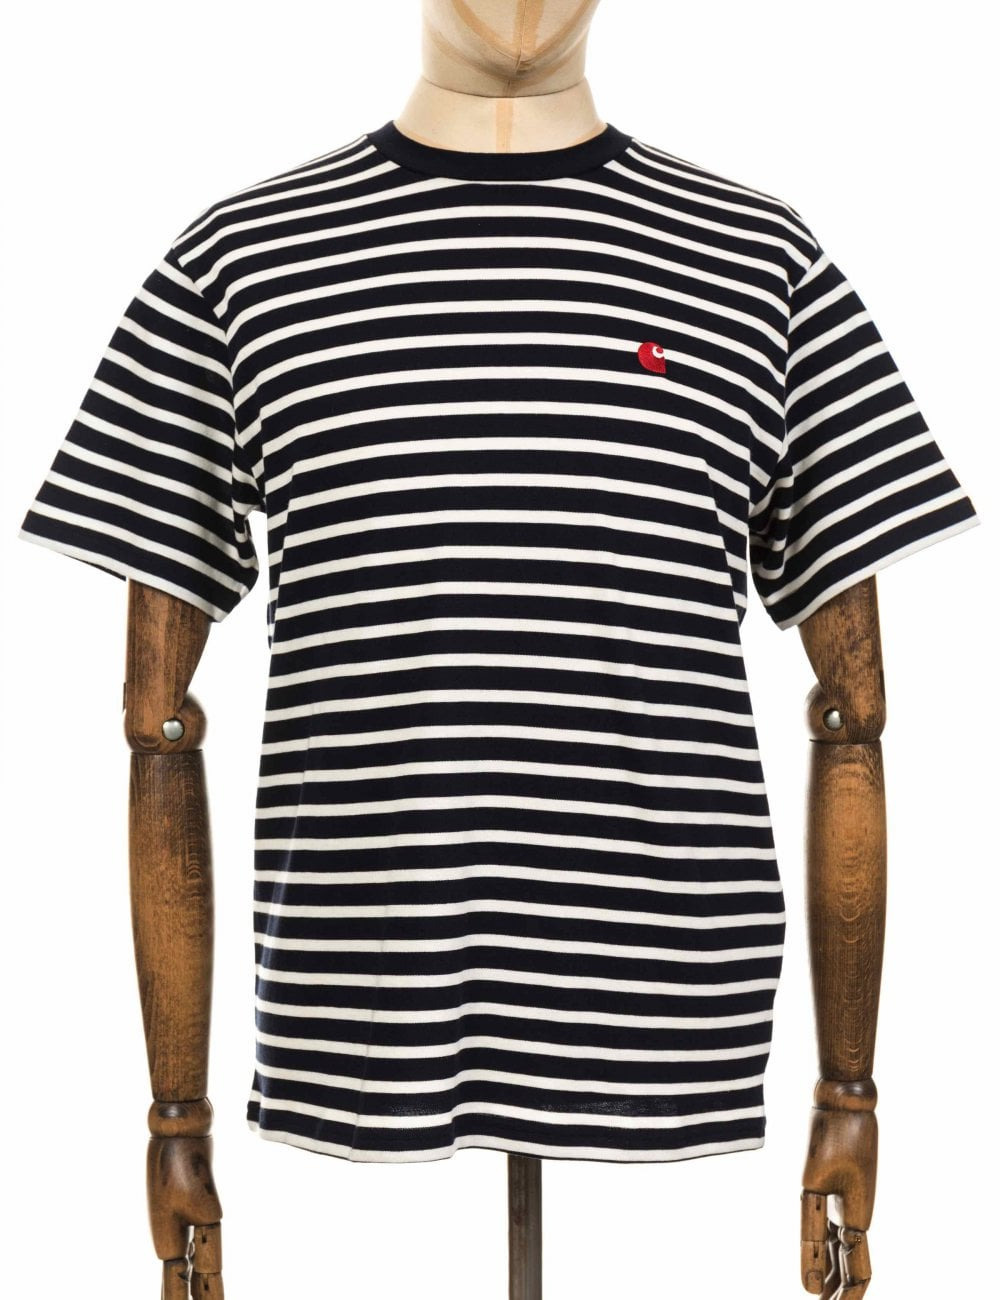 e01dccf1b4 Carhartt WIP S/S Robie Stripe Tee - Dark Navy/Wax - Clothing from ...